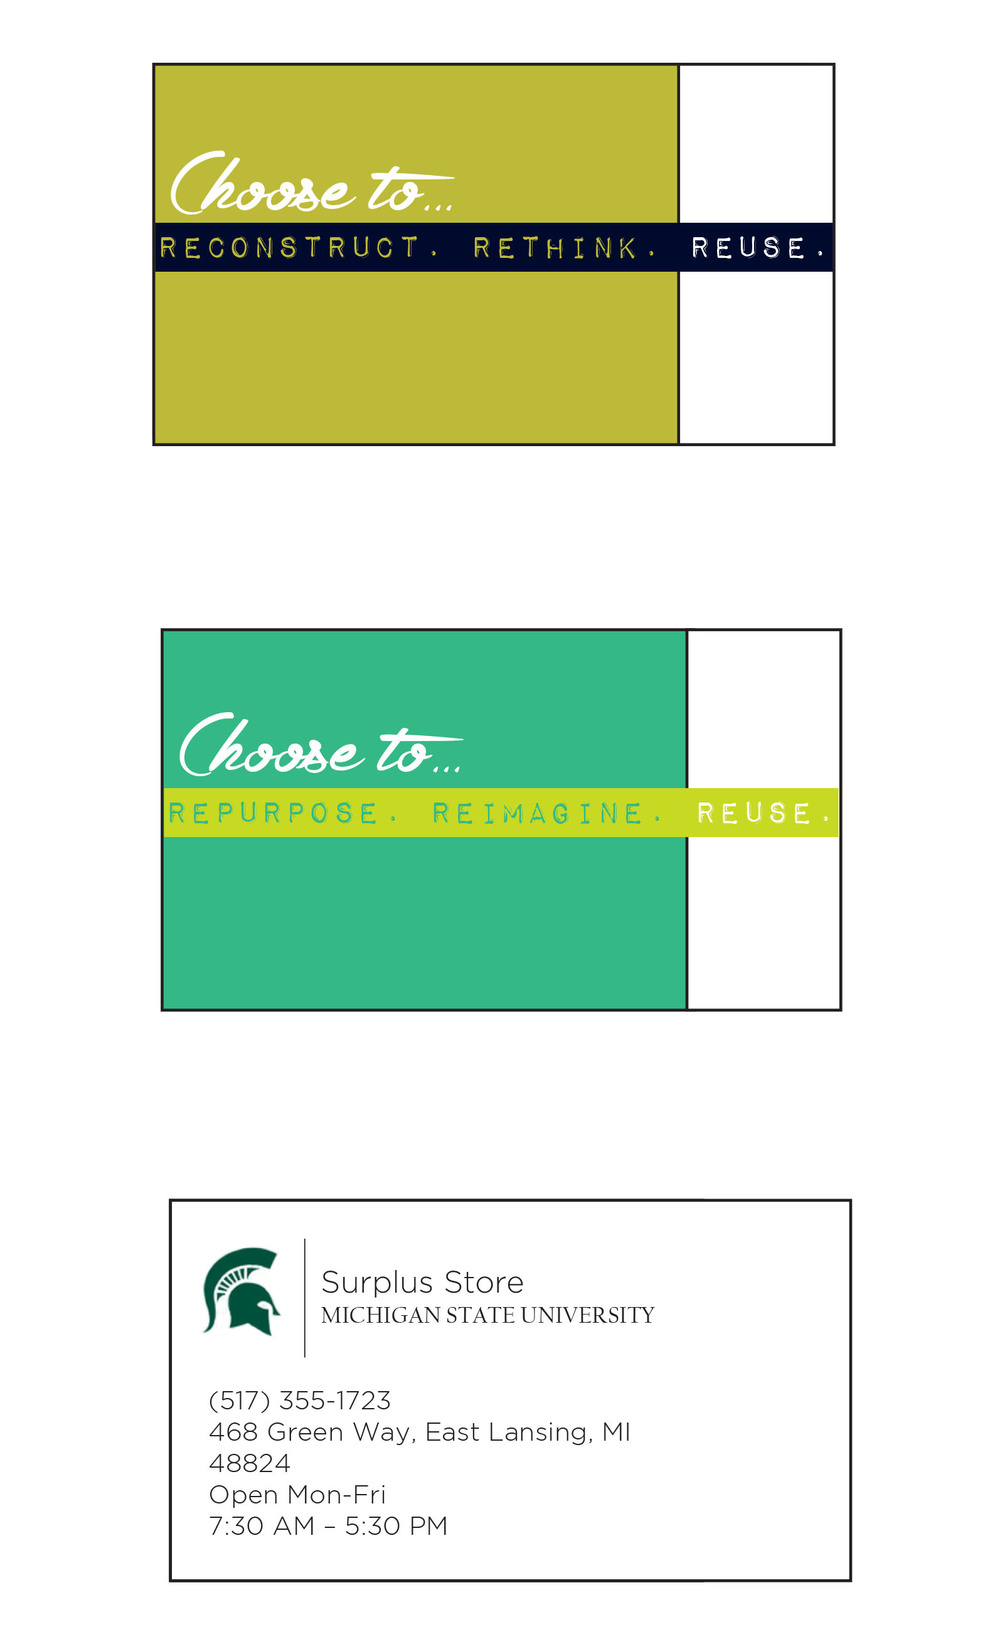 Msu surplus store trisha witherby msu surplus business cards magicingreecefo Gallery